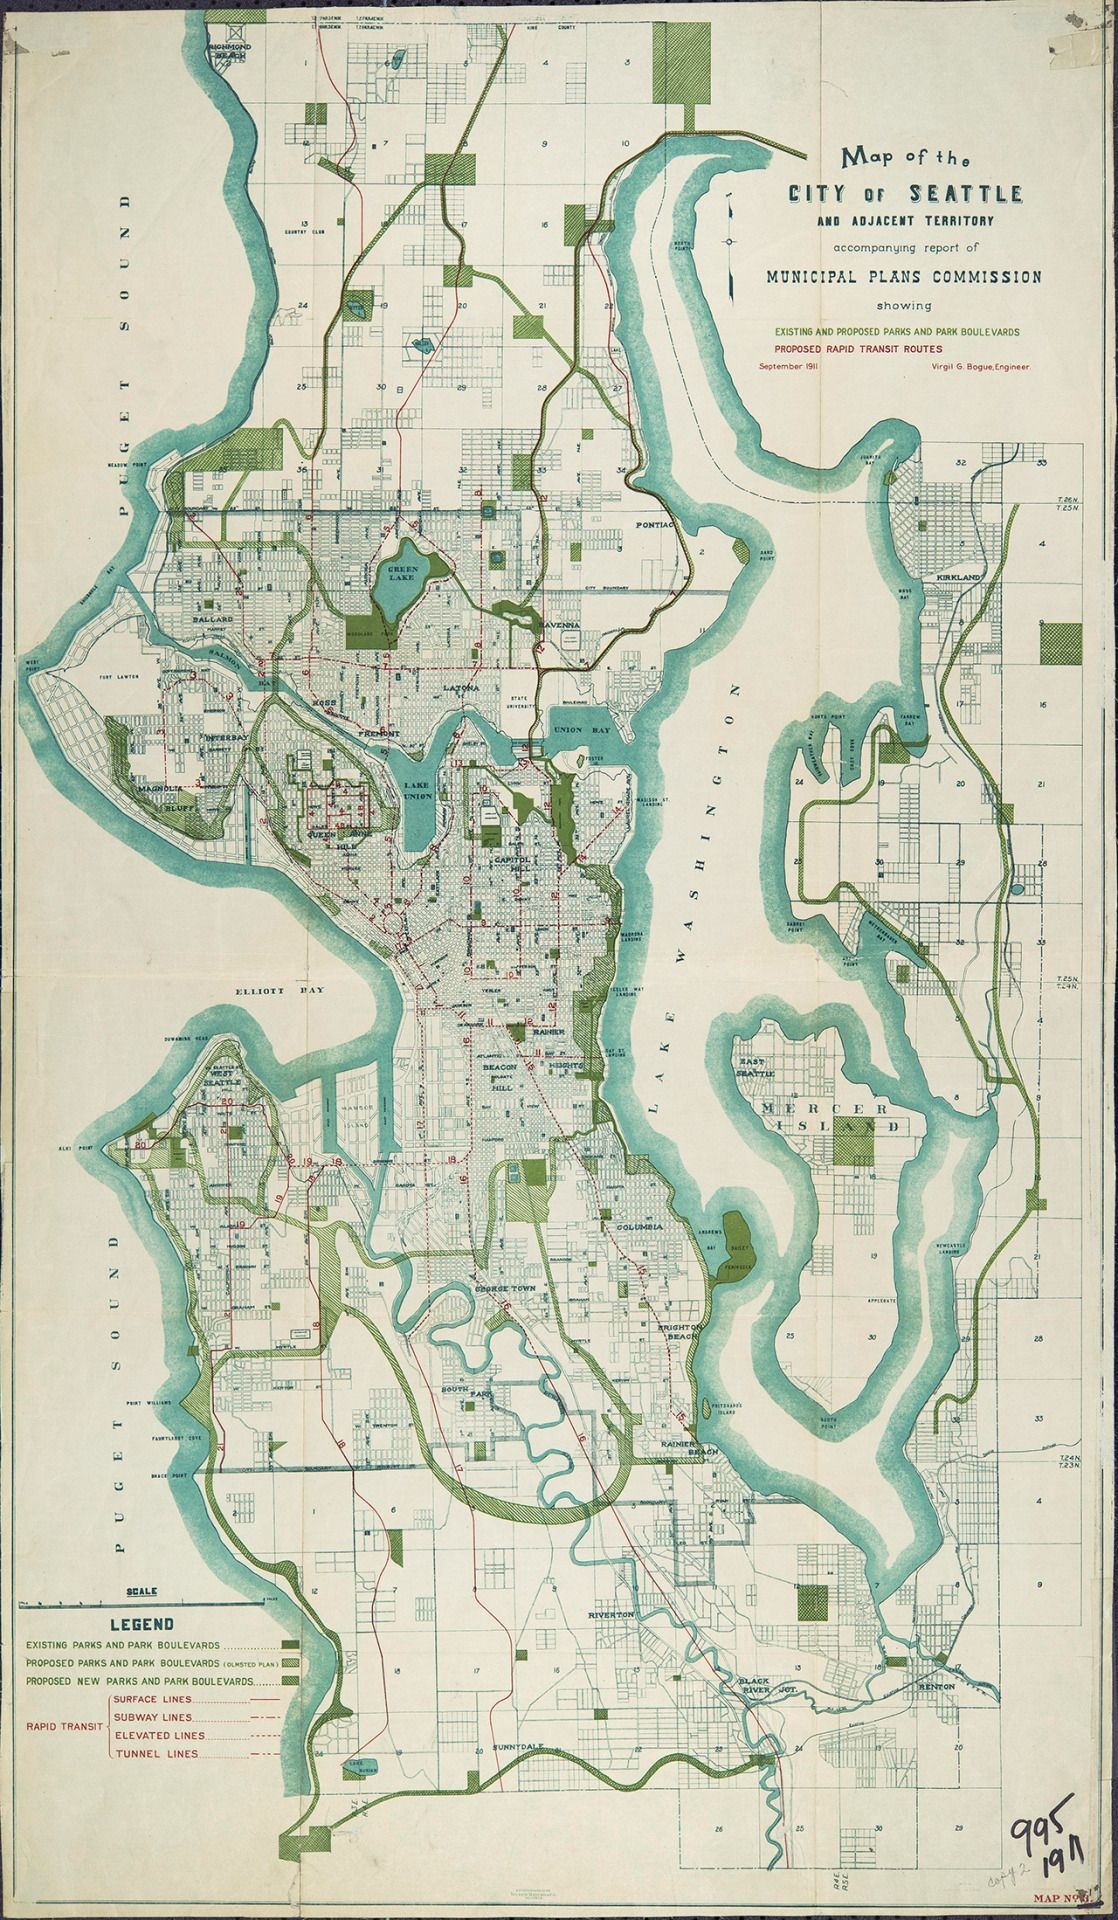 New York City Subway Map 191.Historical Map The Bogue Plan For Seattle 1911 Transit Maps In